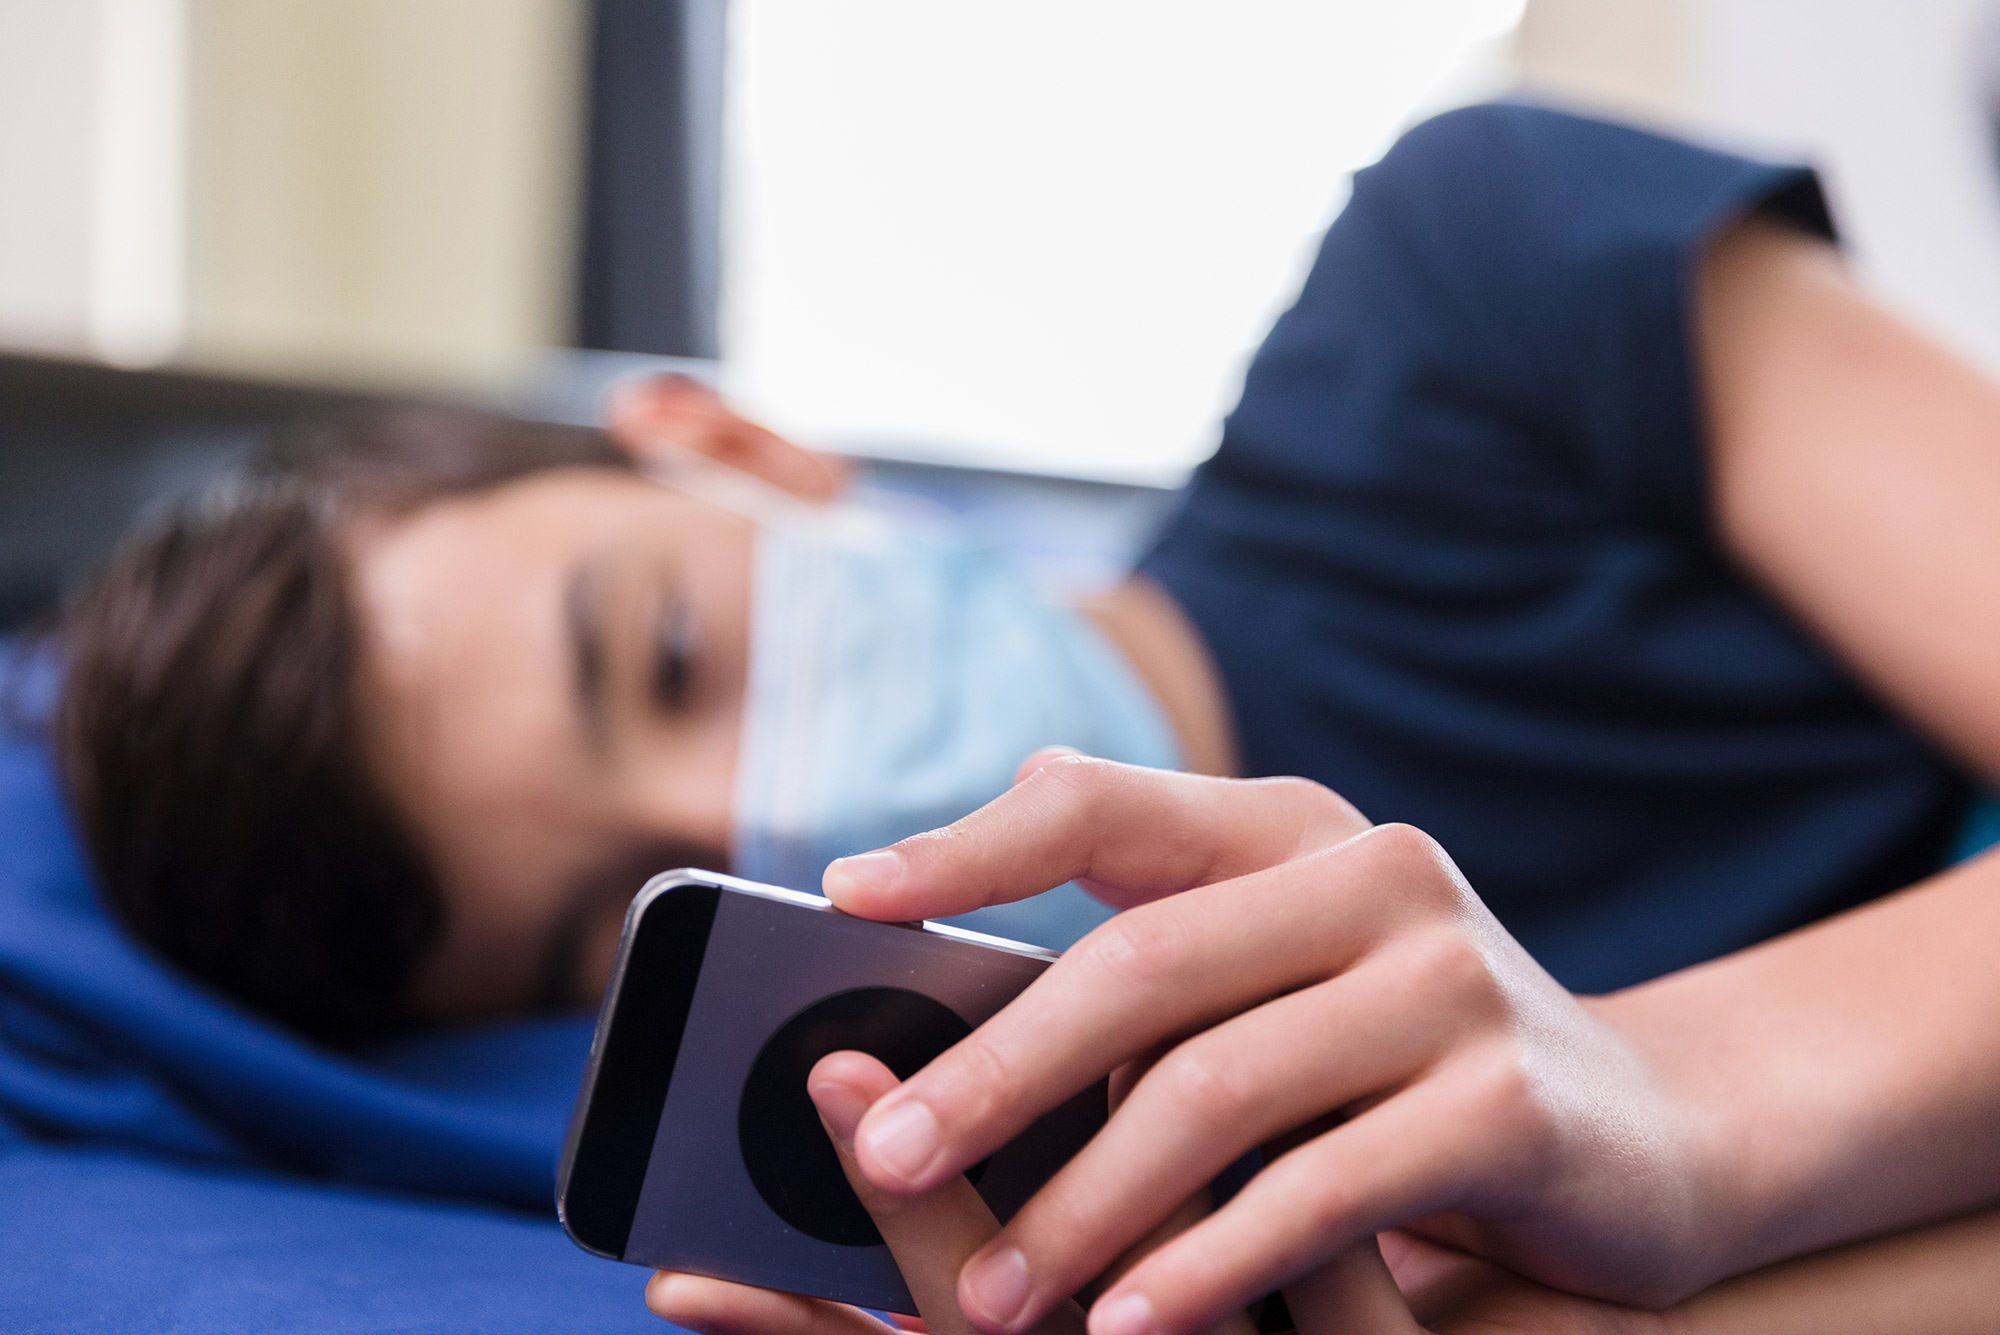 During COVID-19 pandemic, a teen wearing a protective mask lies in bed watching a video on his smart phone. His face is blurred.